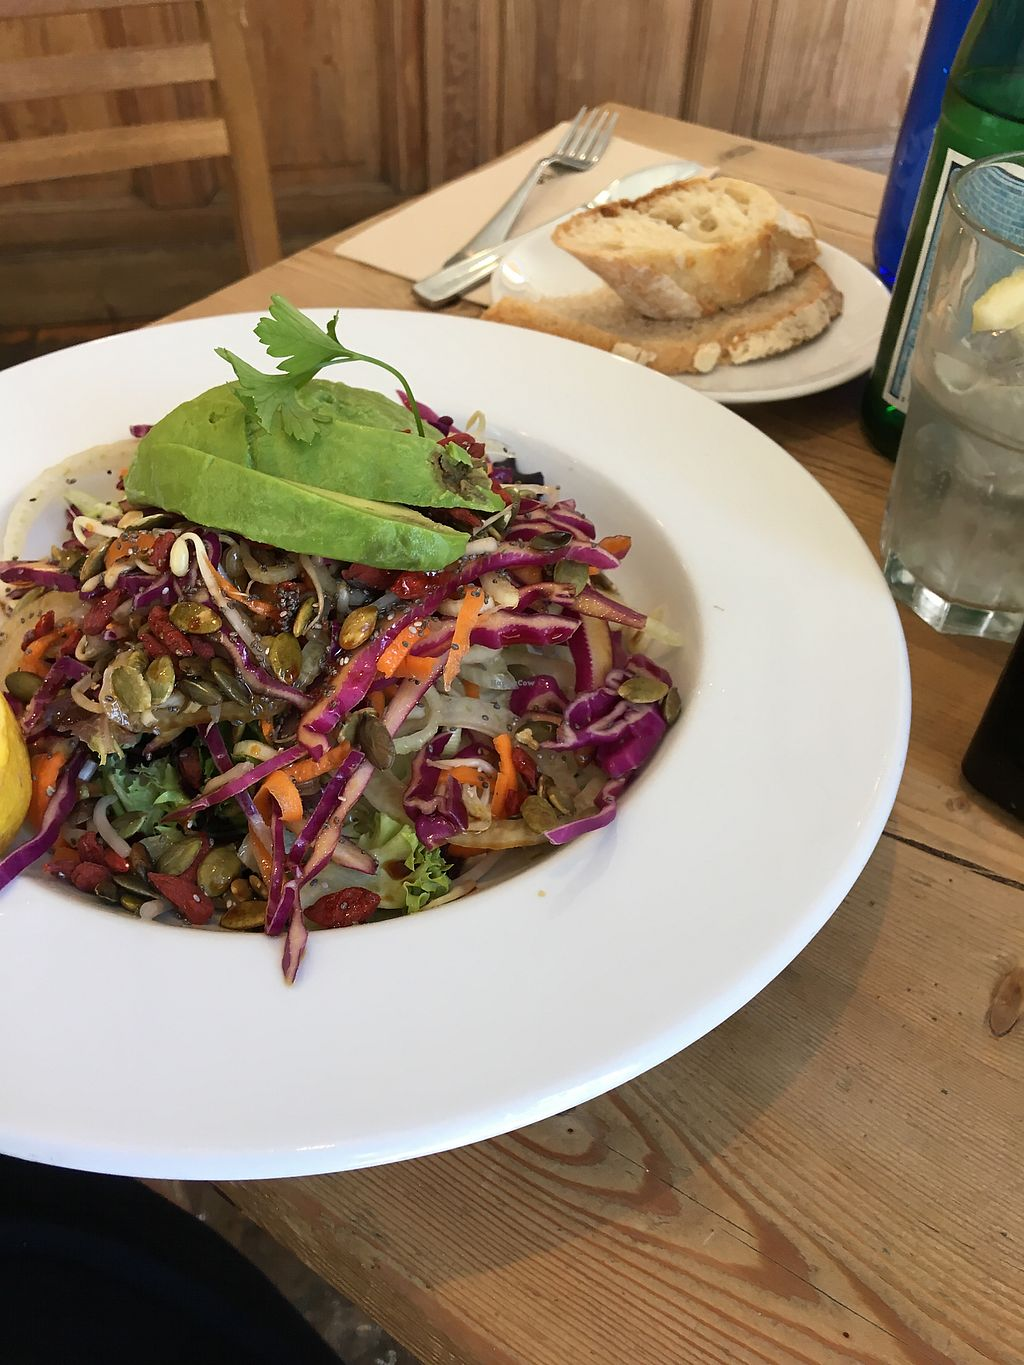 """Photo of Le Pain Quotidien - Gran Via  by <a href=""""/members/profile/NaamaCohen"""">NaamaCohen</a> <br/>salad  <br/> July 16, 2017  - <a href='/contact/abuse/image/83346/281040'>Report</a>"""